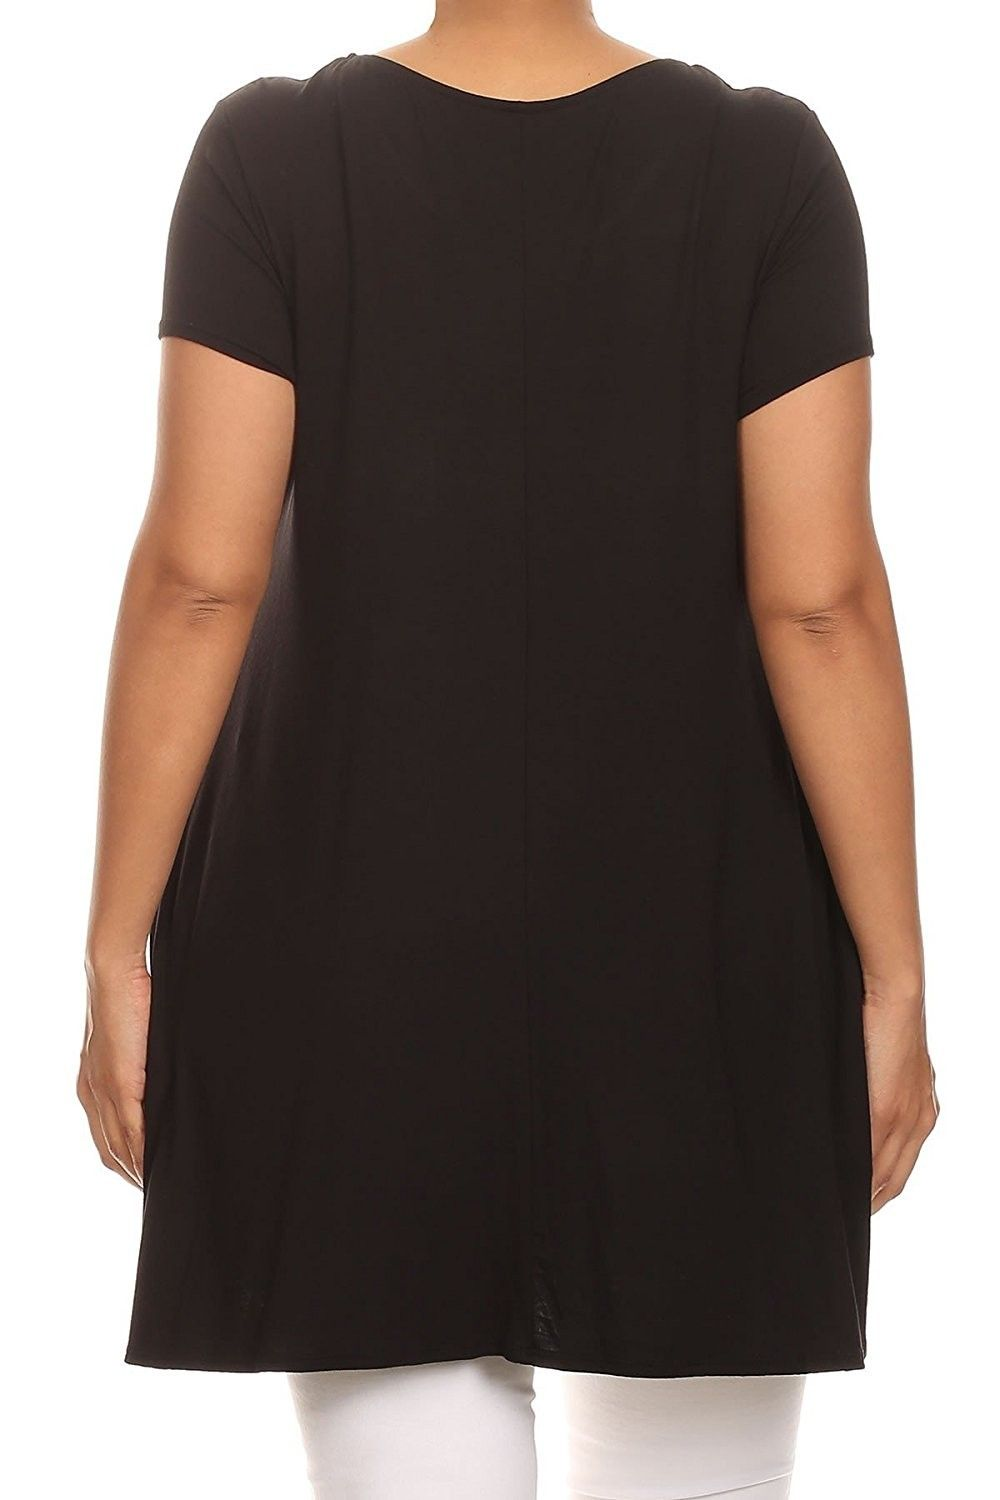 9337e3965d Women's Clothing, Tops & Tees, Knits & Tees, Women Plus Size Short Sleeve  Solid Pocket Asymmetric Tunic Knit Top Tee Shirt - Turquoise - CE185R6YU63 # Tops ...